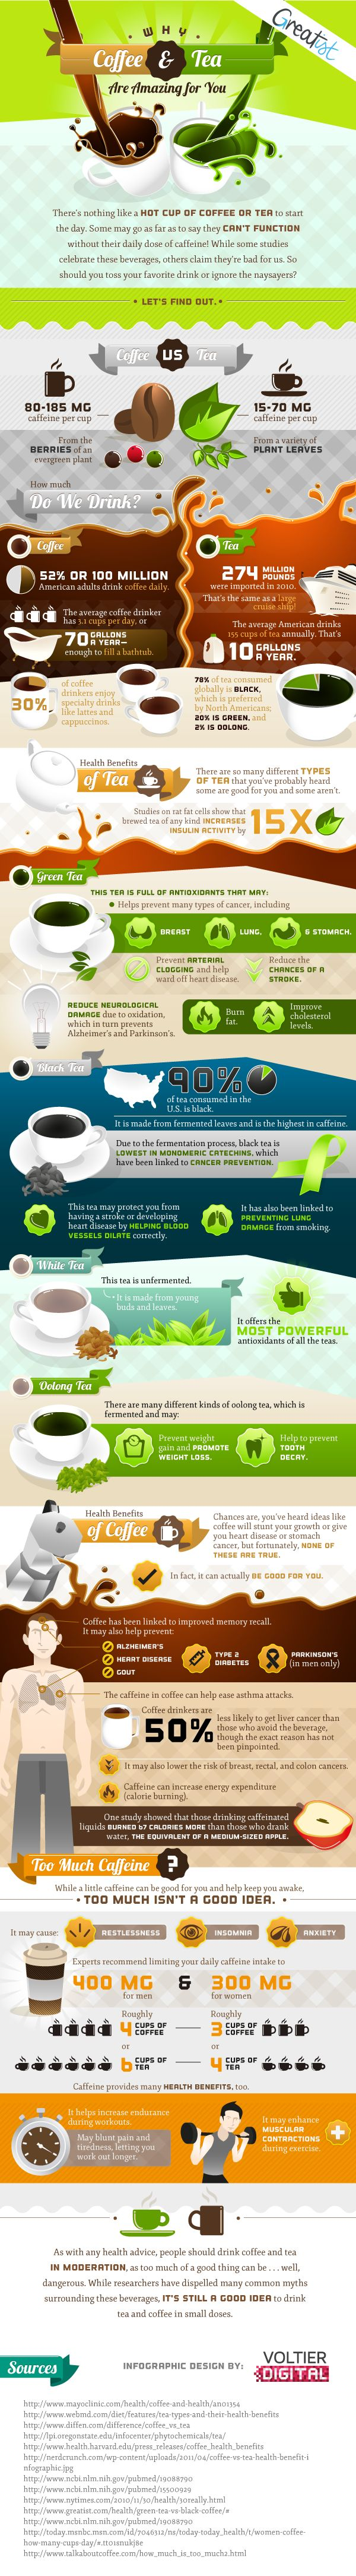 More good reasons for me to love my coffee and tea :)